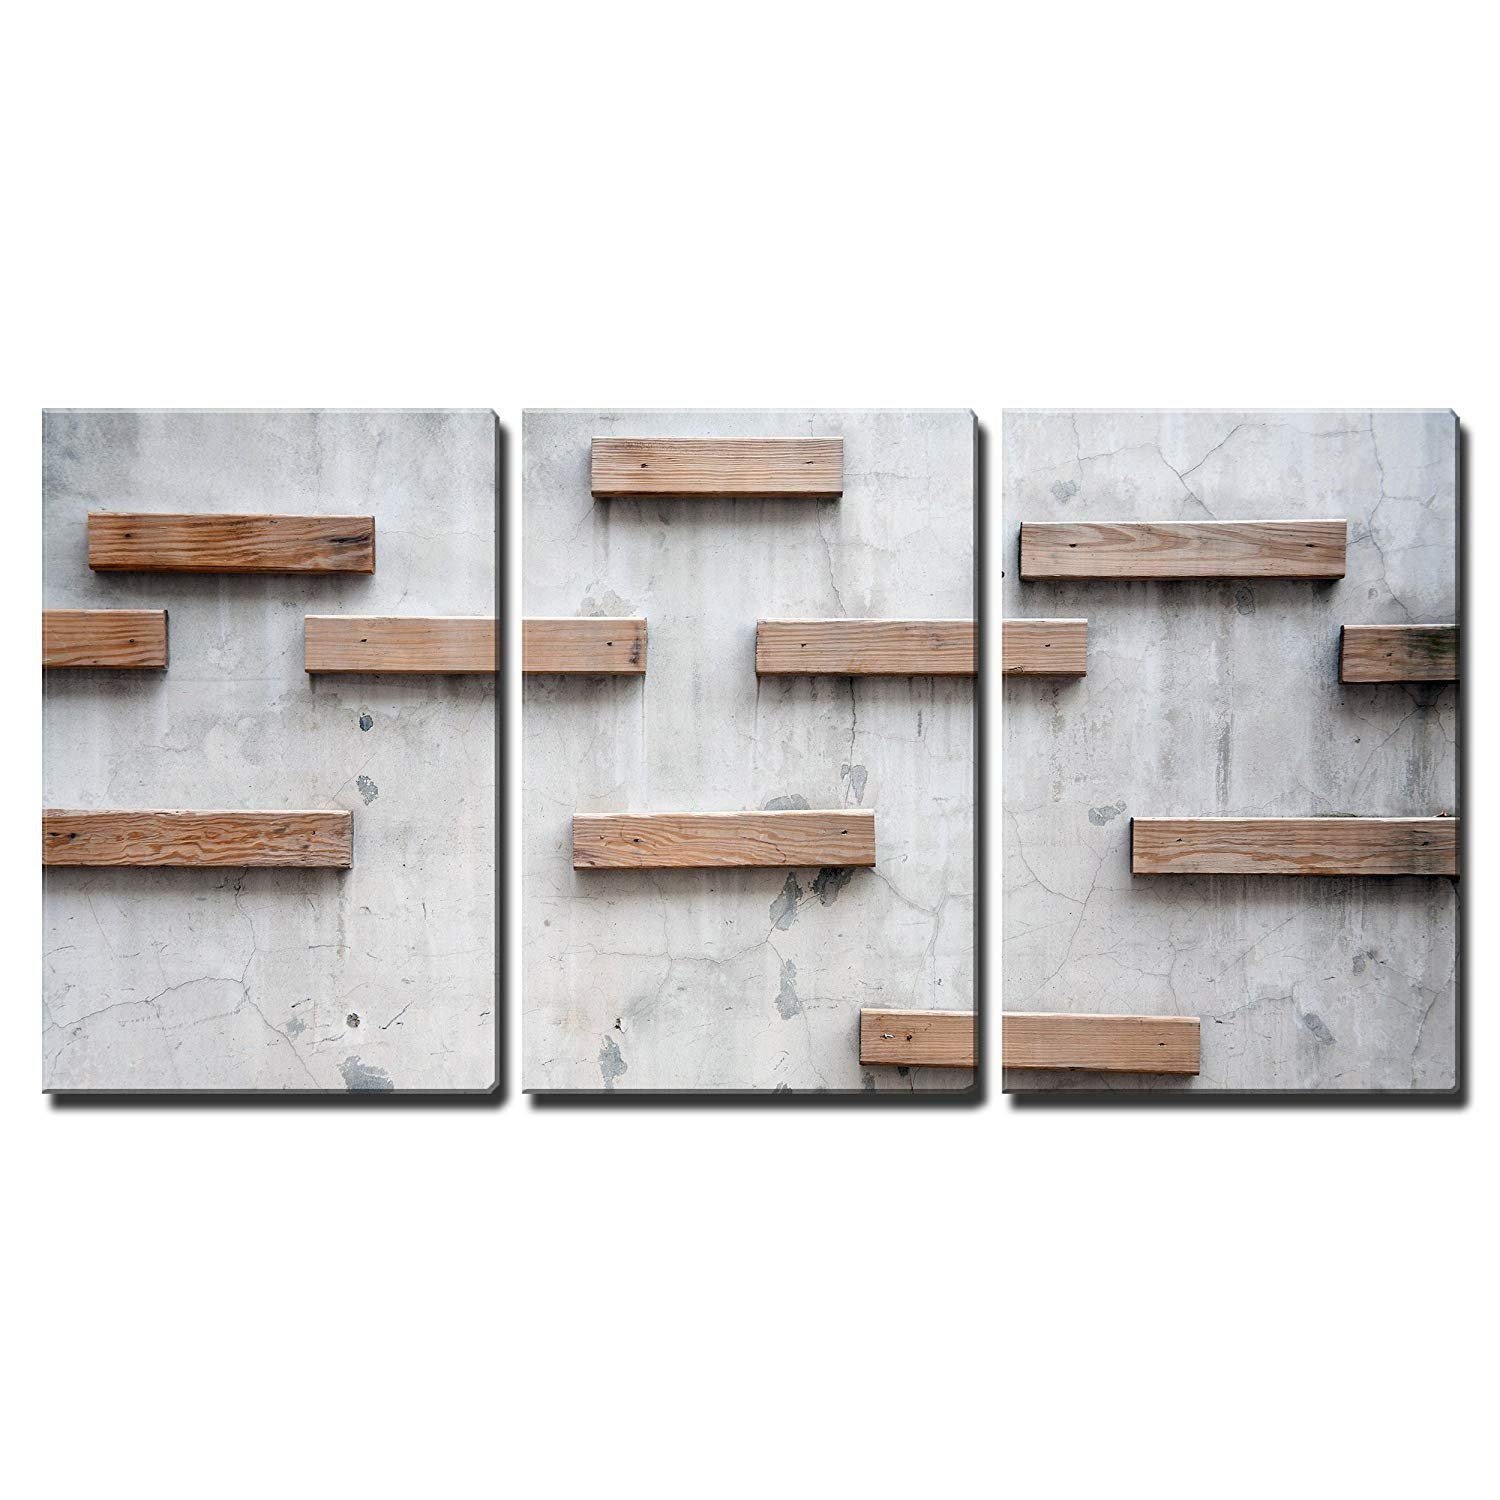 wall26 - 3 Piece Canvas Wall Art - Wood Texture with Nature Form - Modern Home Decor Stretched and Framed Ready to Hang - 24''x36''x3 Panels